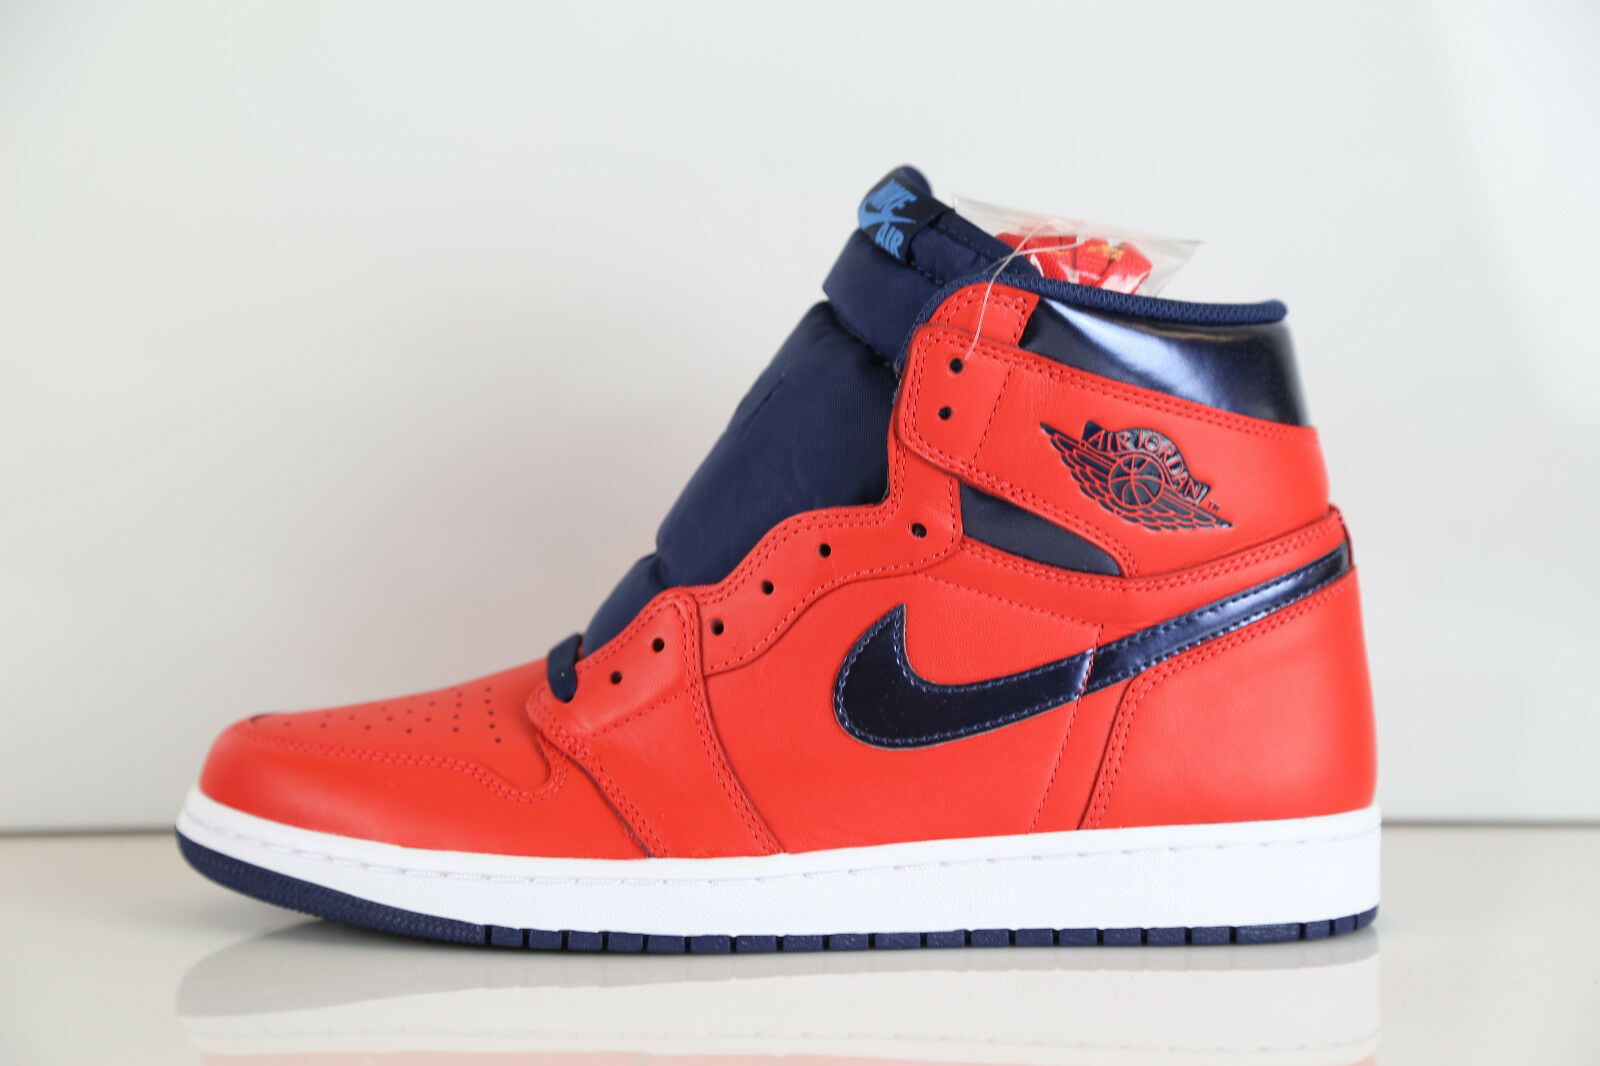 Nike Air Jordan Retro 1 High OG David Letterman Crimson 555088-606 7.5-13 11 12